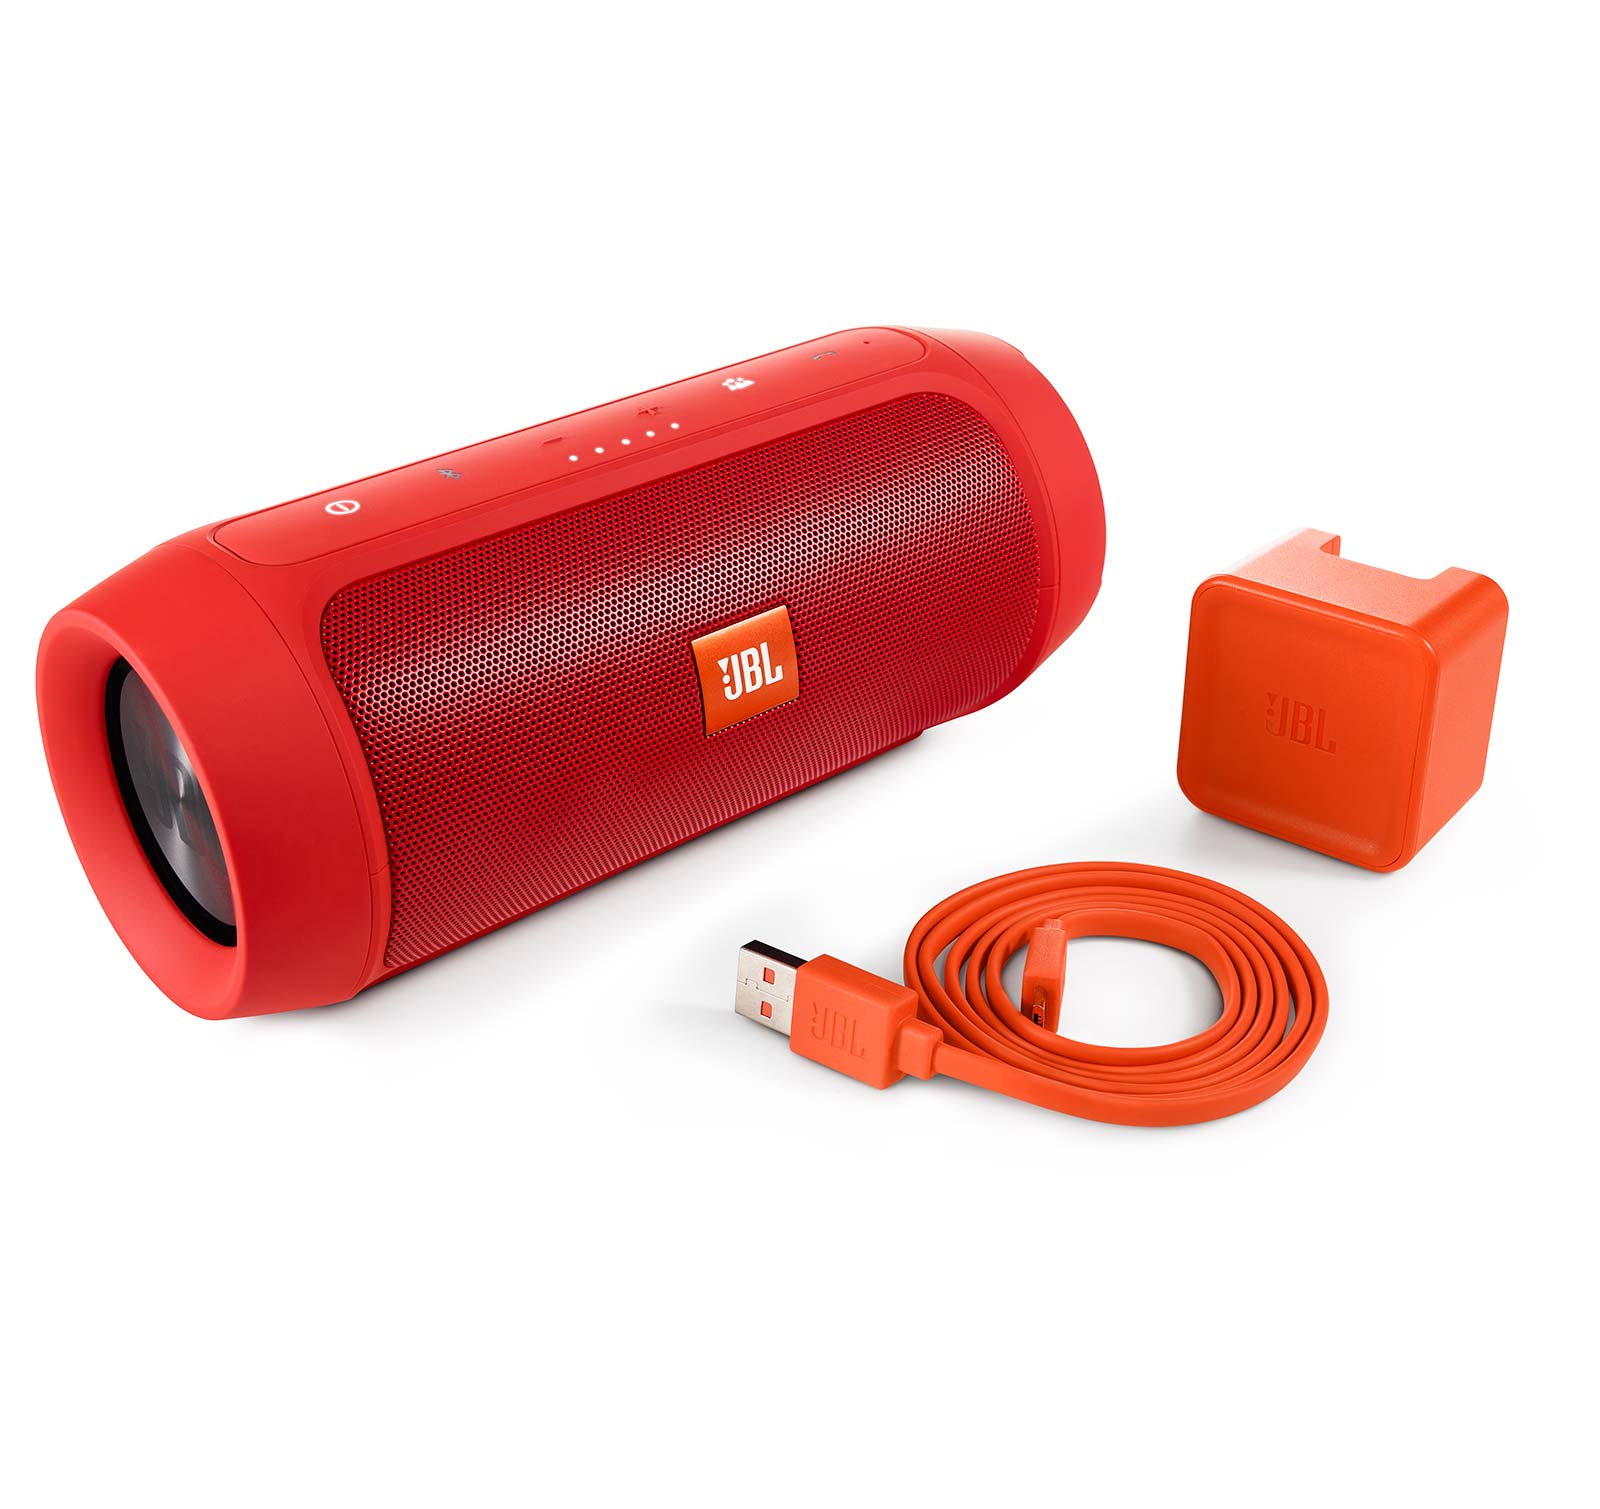 jbl bluetooth speakers walmart. jbl charge 2 plus red splashproof portable bluetooth speaker - walmart.com jbl speakers walmart